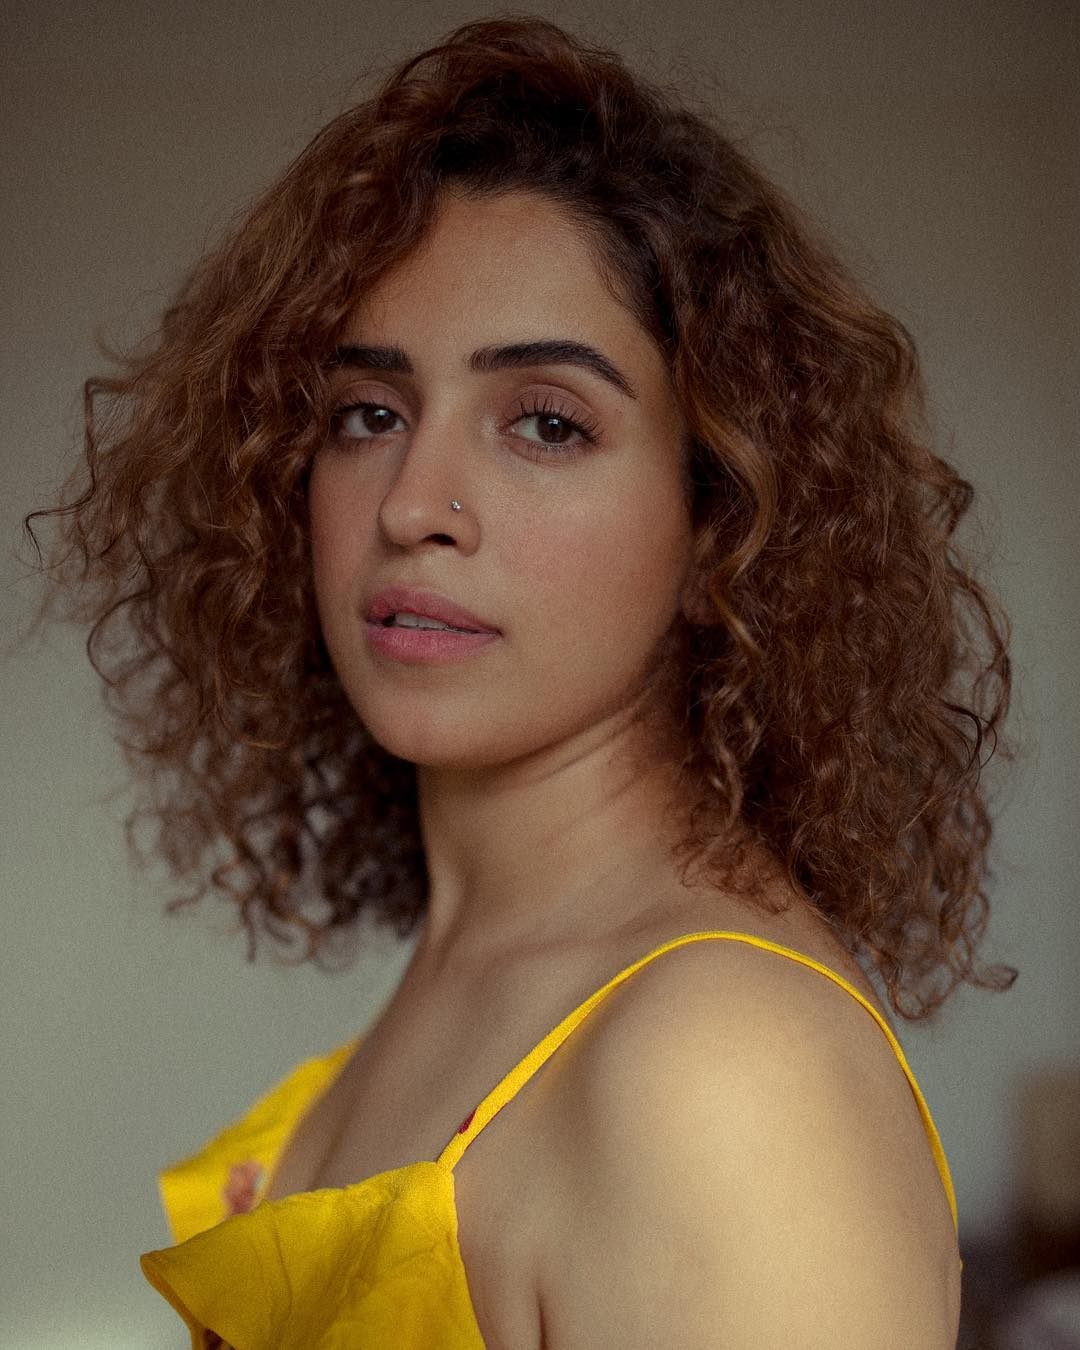 Sanya Malhotra boobs show photo in yellow dress